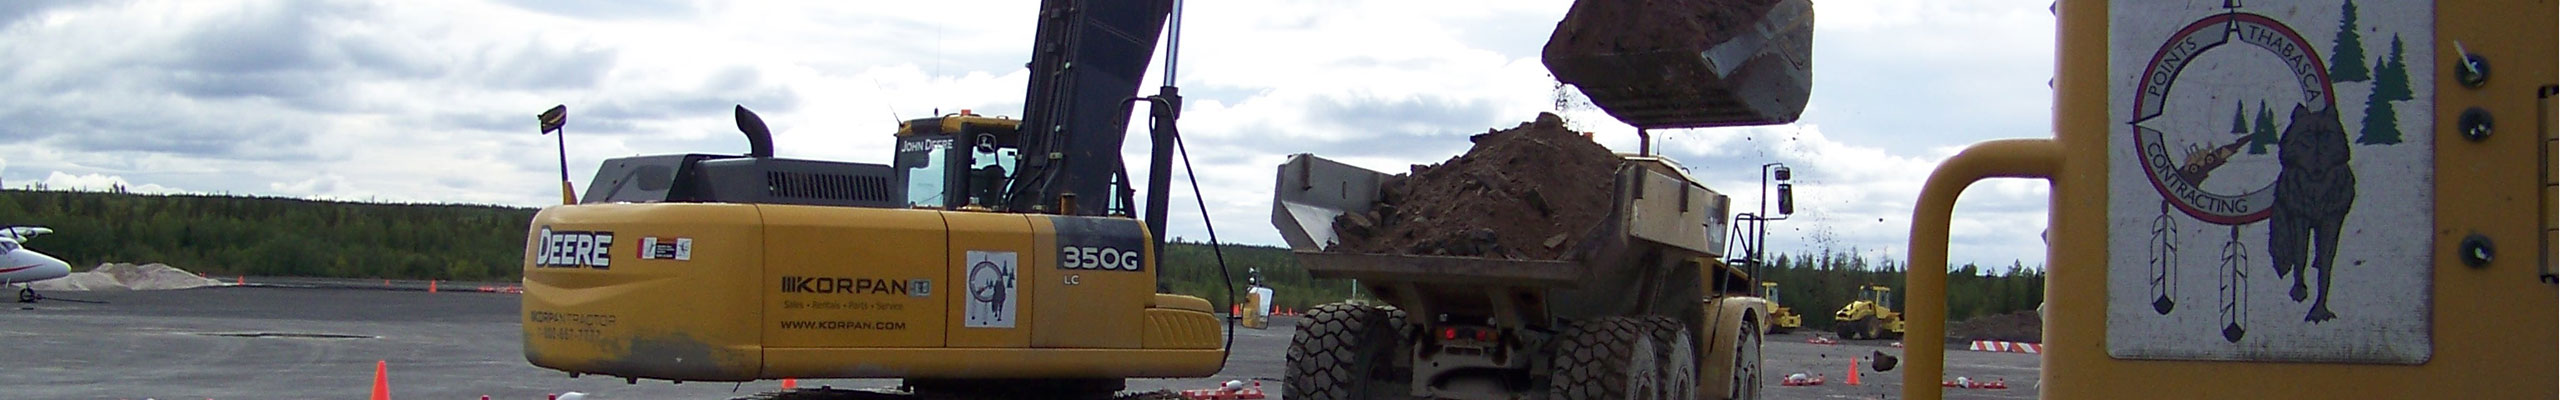 Site Services - Labour Supply, Janitorial, Maintenance   Points Athabasca Contracting